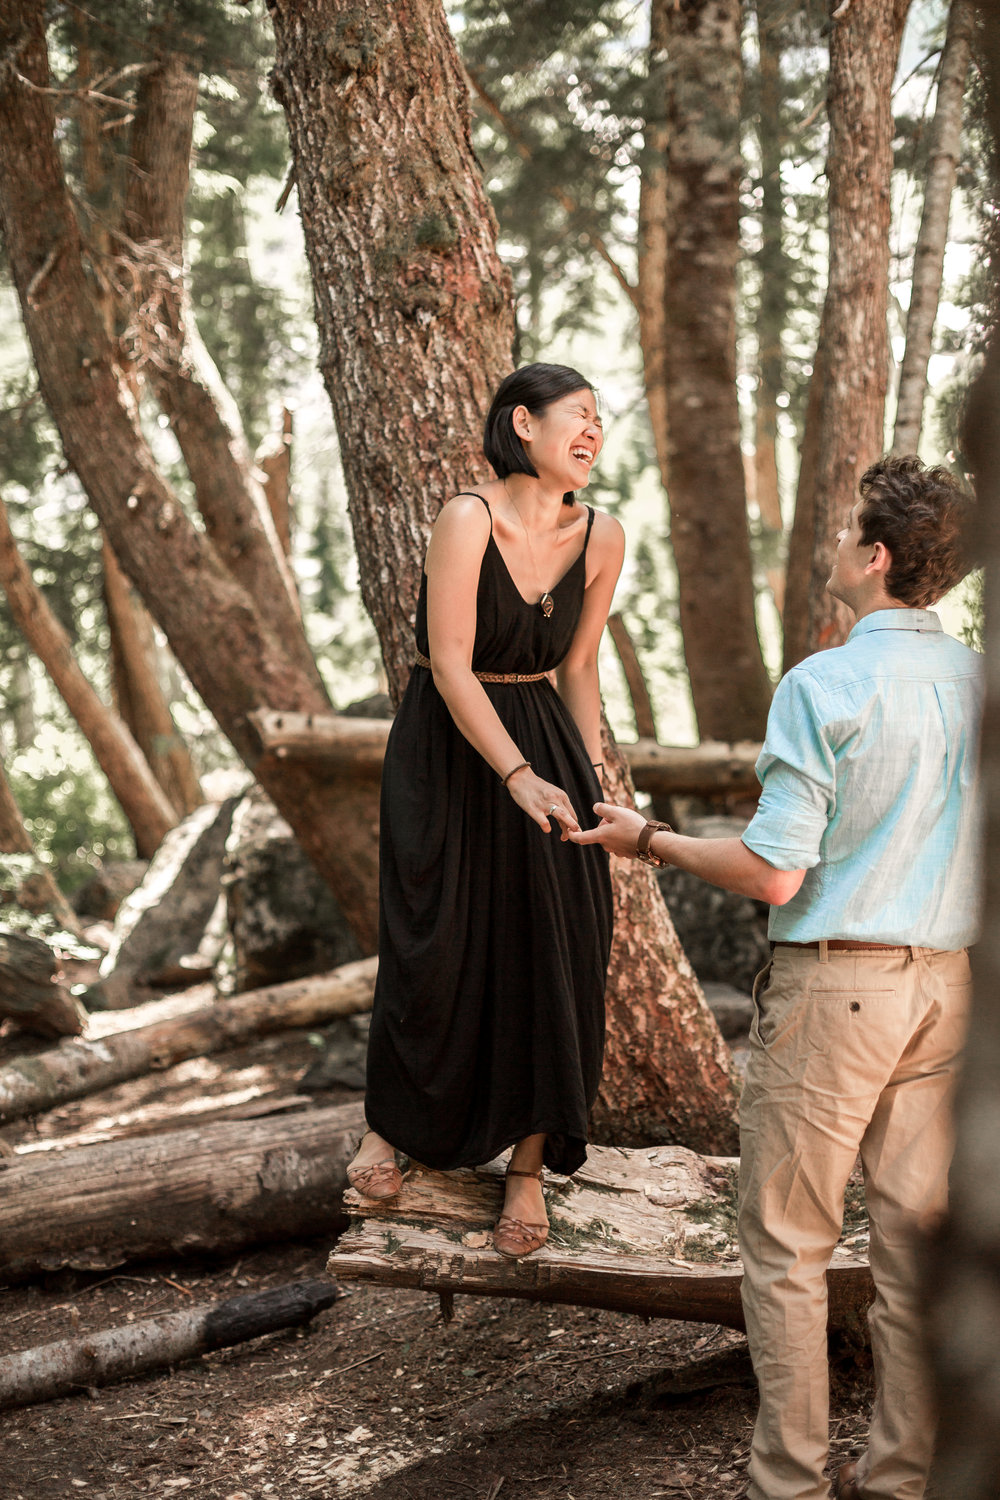 nicole-daacke-photography-hiking-engagement-session-in-snoqualmie-pass-washington-wedding-photographer-seattle-elopement-photography-adventurous-hiking-photos-heather-lake-washington-trails-17.jpg